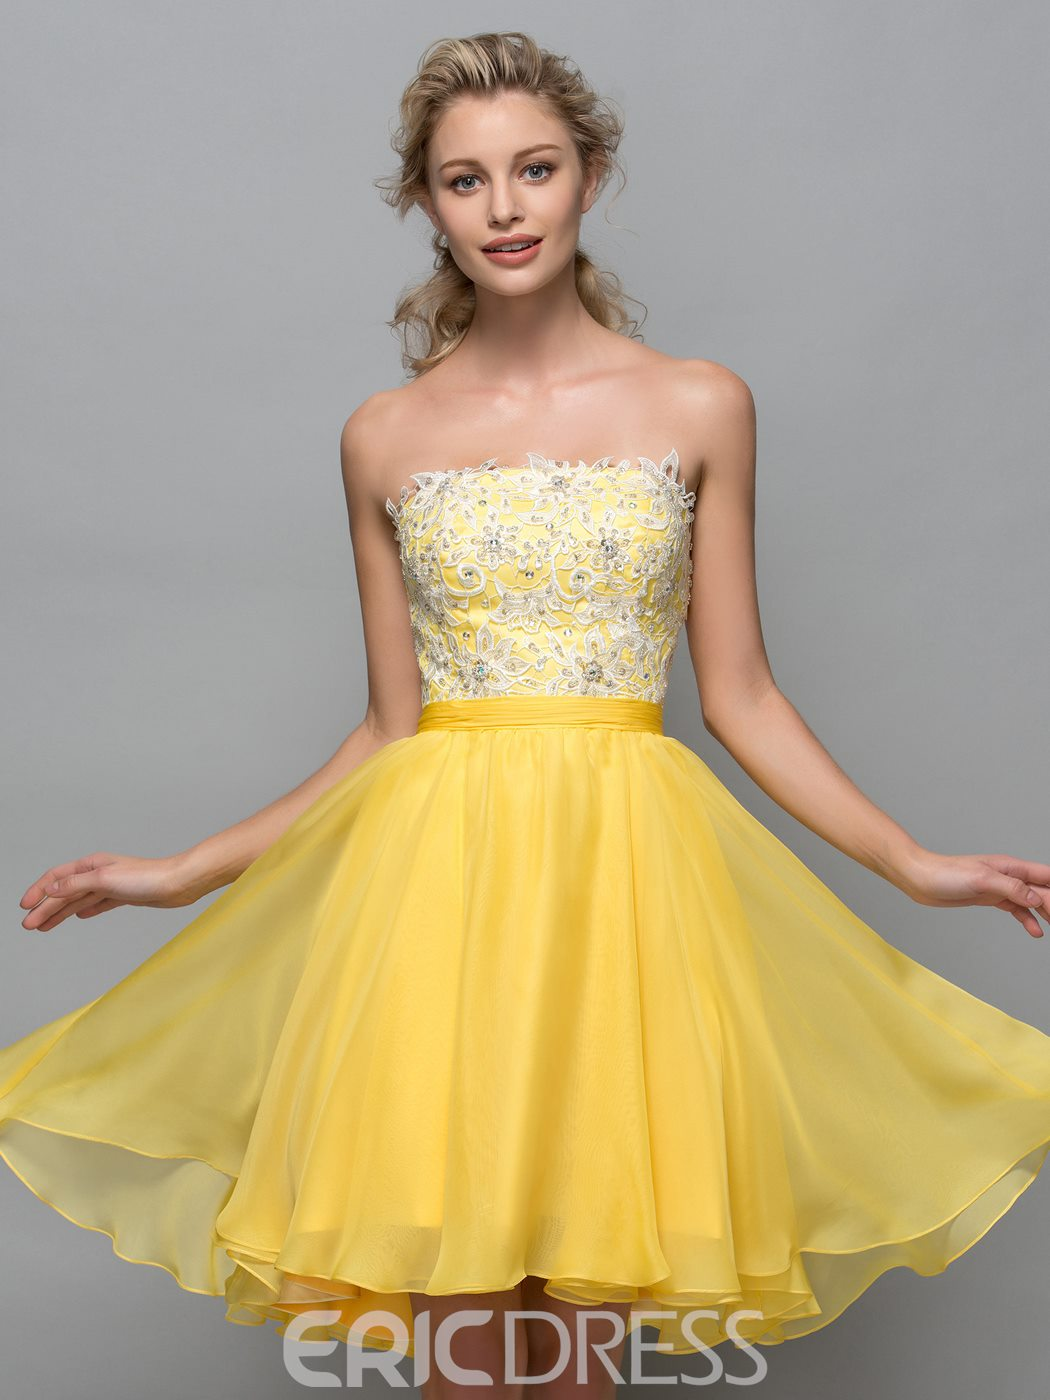 Ericdress Strapless Appliques Sequins Short Cocktail Dress